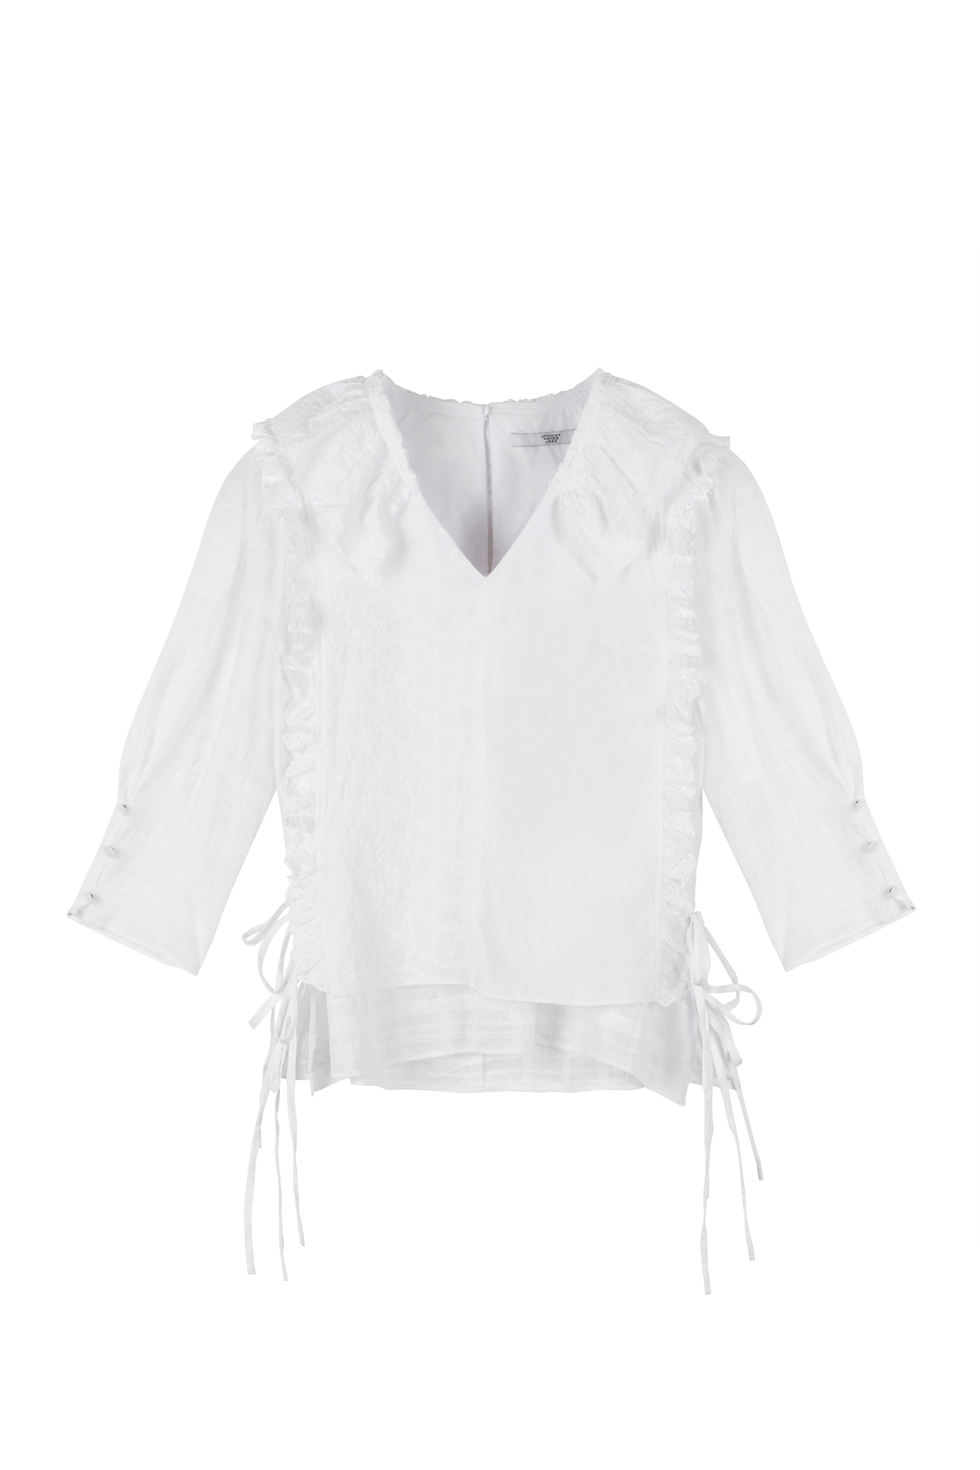 SQUARED RUFFLE BLOUSE - WHITE